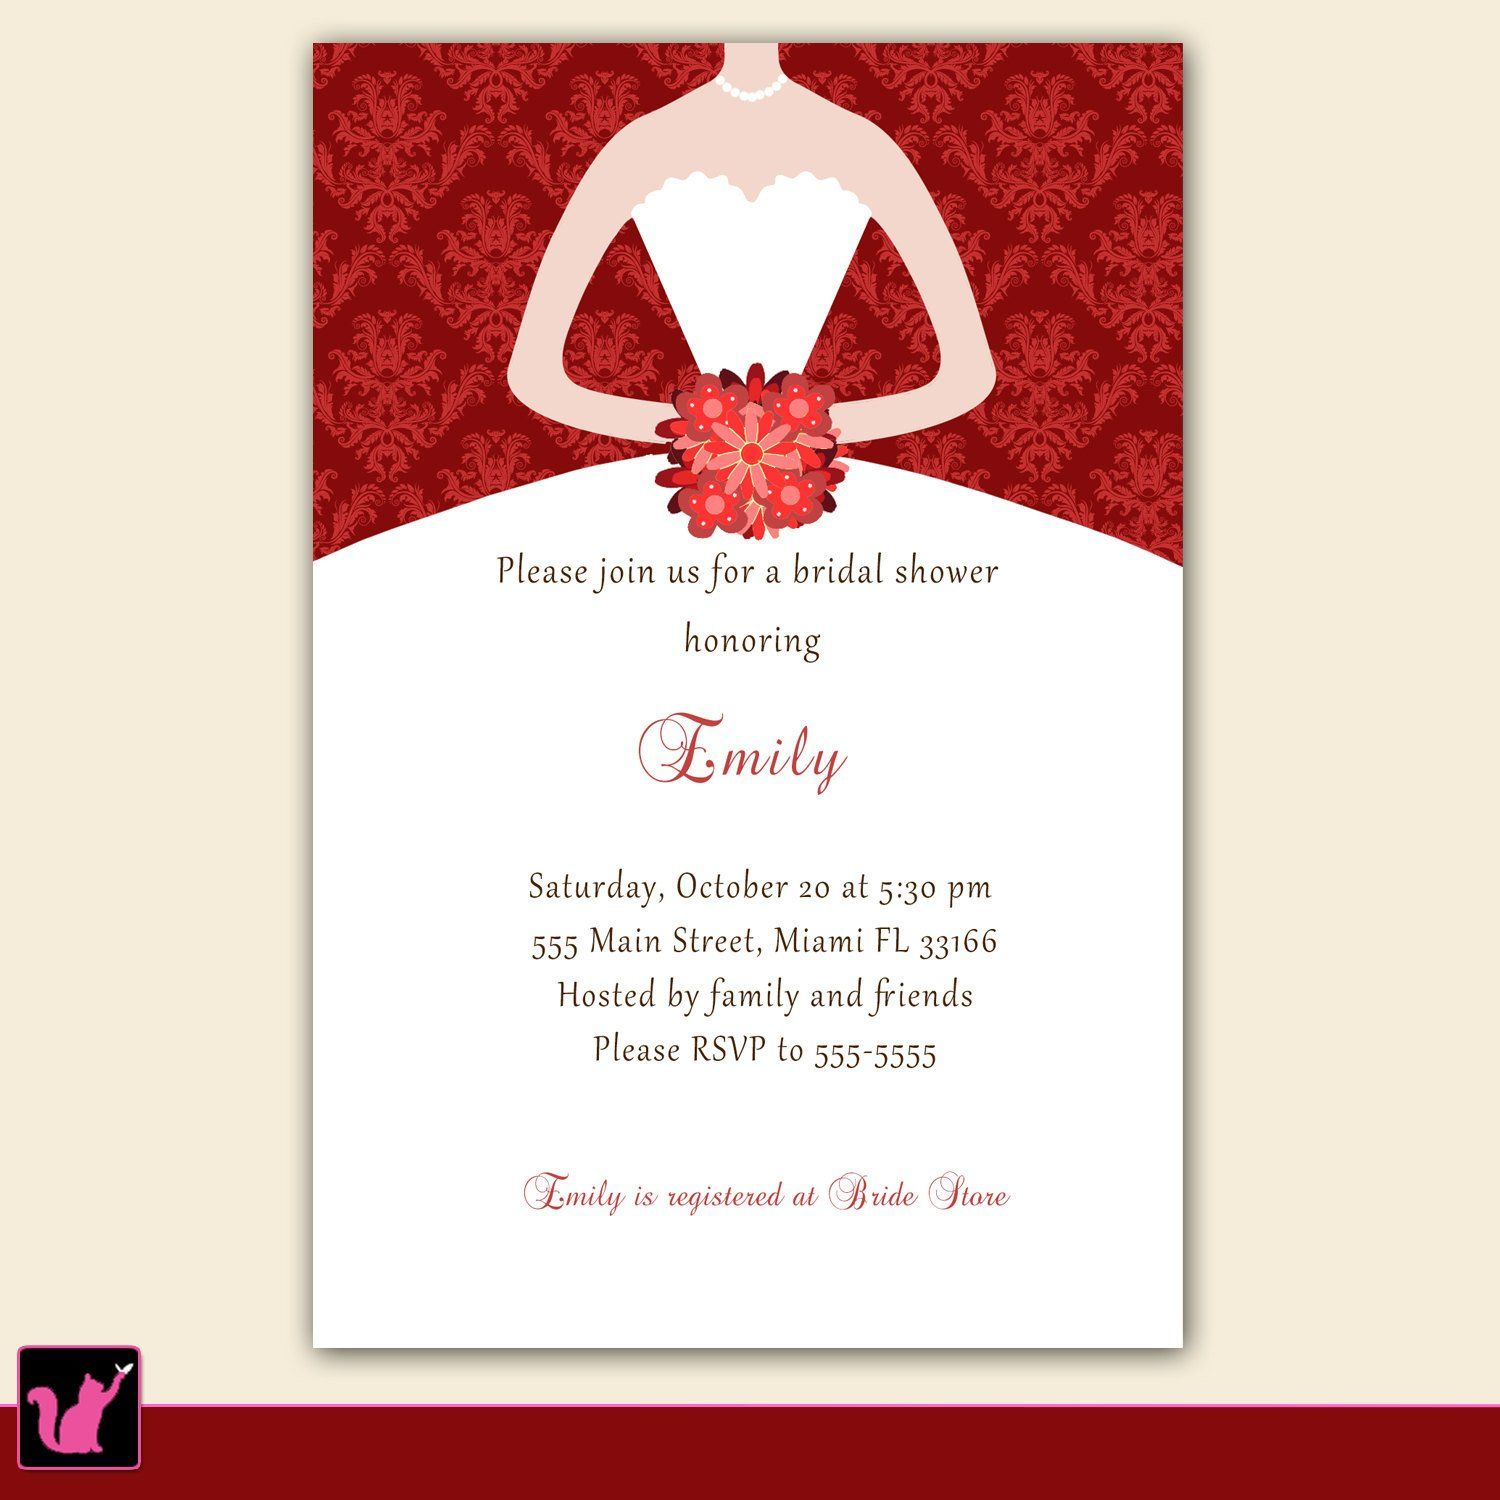 Dress Invitation Bridal Shower Sweet 16 Red Damask | Sweet 16 ...